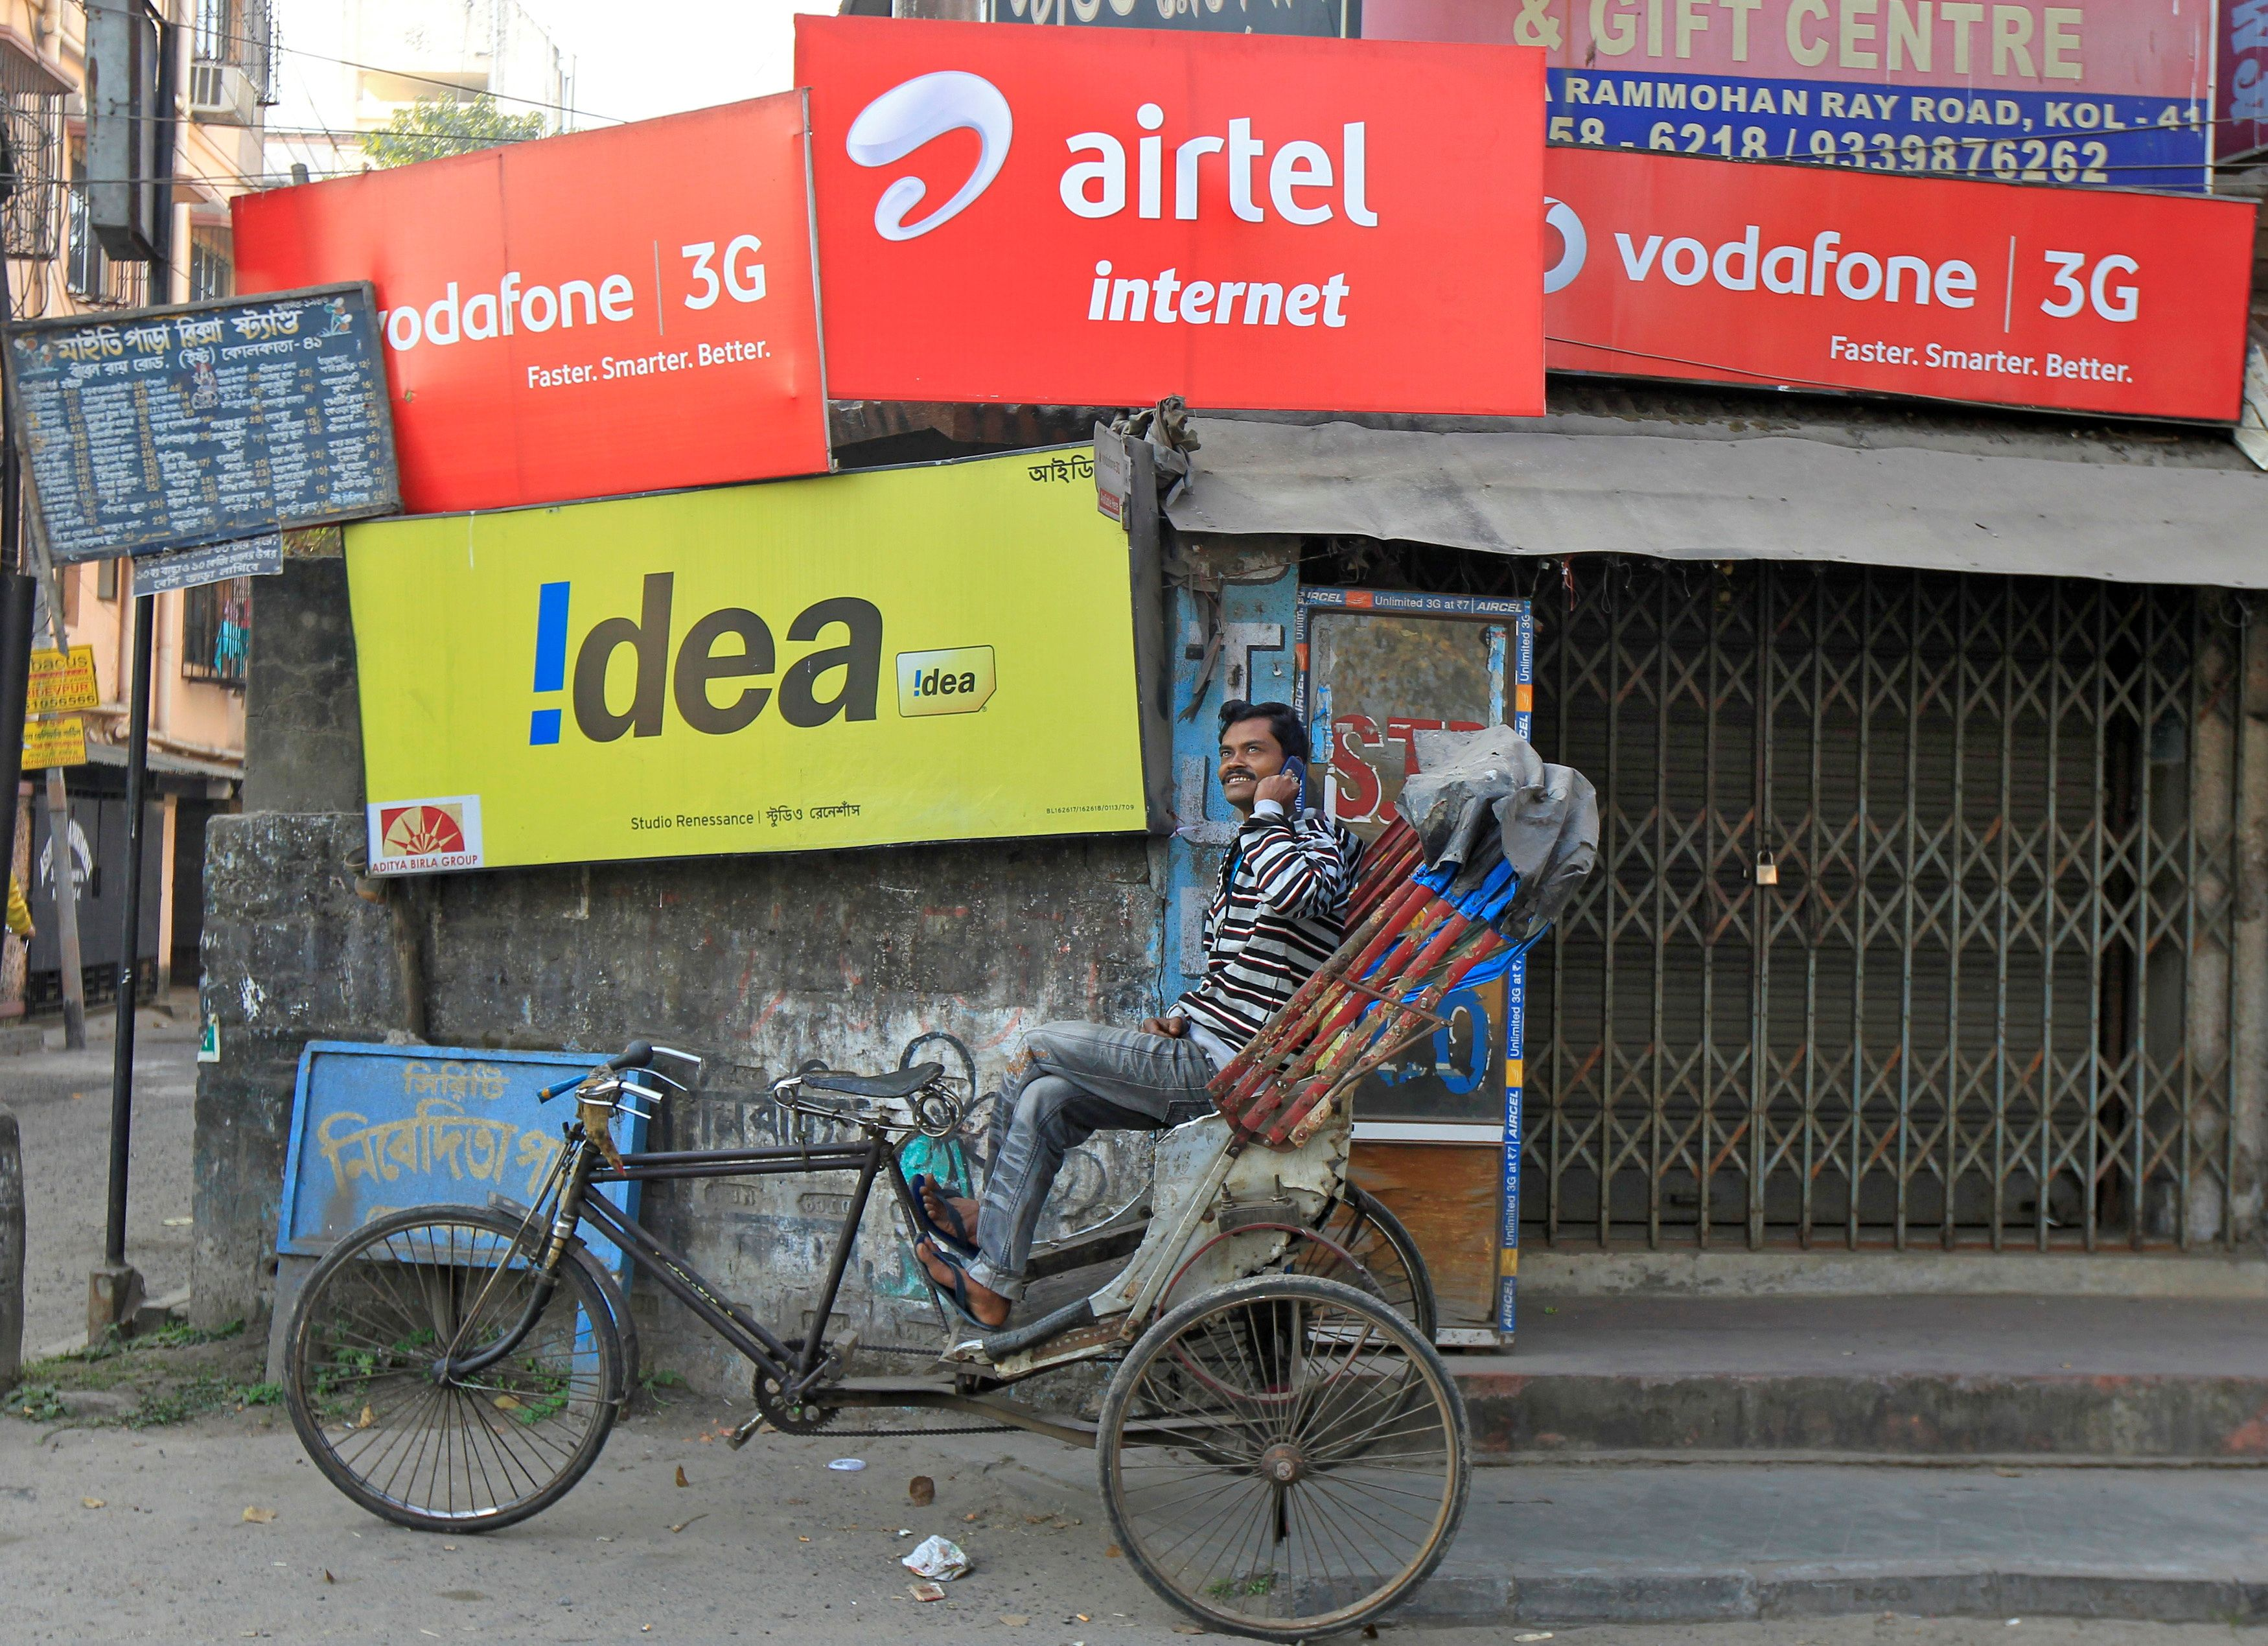 A rickshaw puller speaks on his mobile phone as he waits for customers in front of advertisement billboards belonging to telecom companies in Kolkata, India, February 3, 2014.  REUTERS/Rupak De Chowdhuri/File Photo